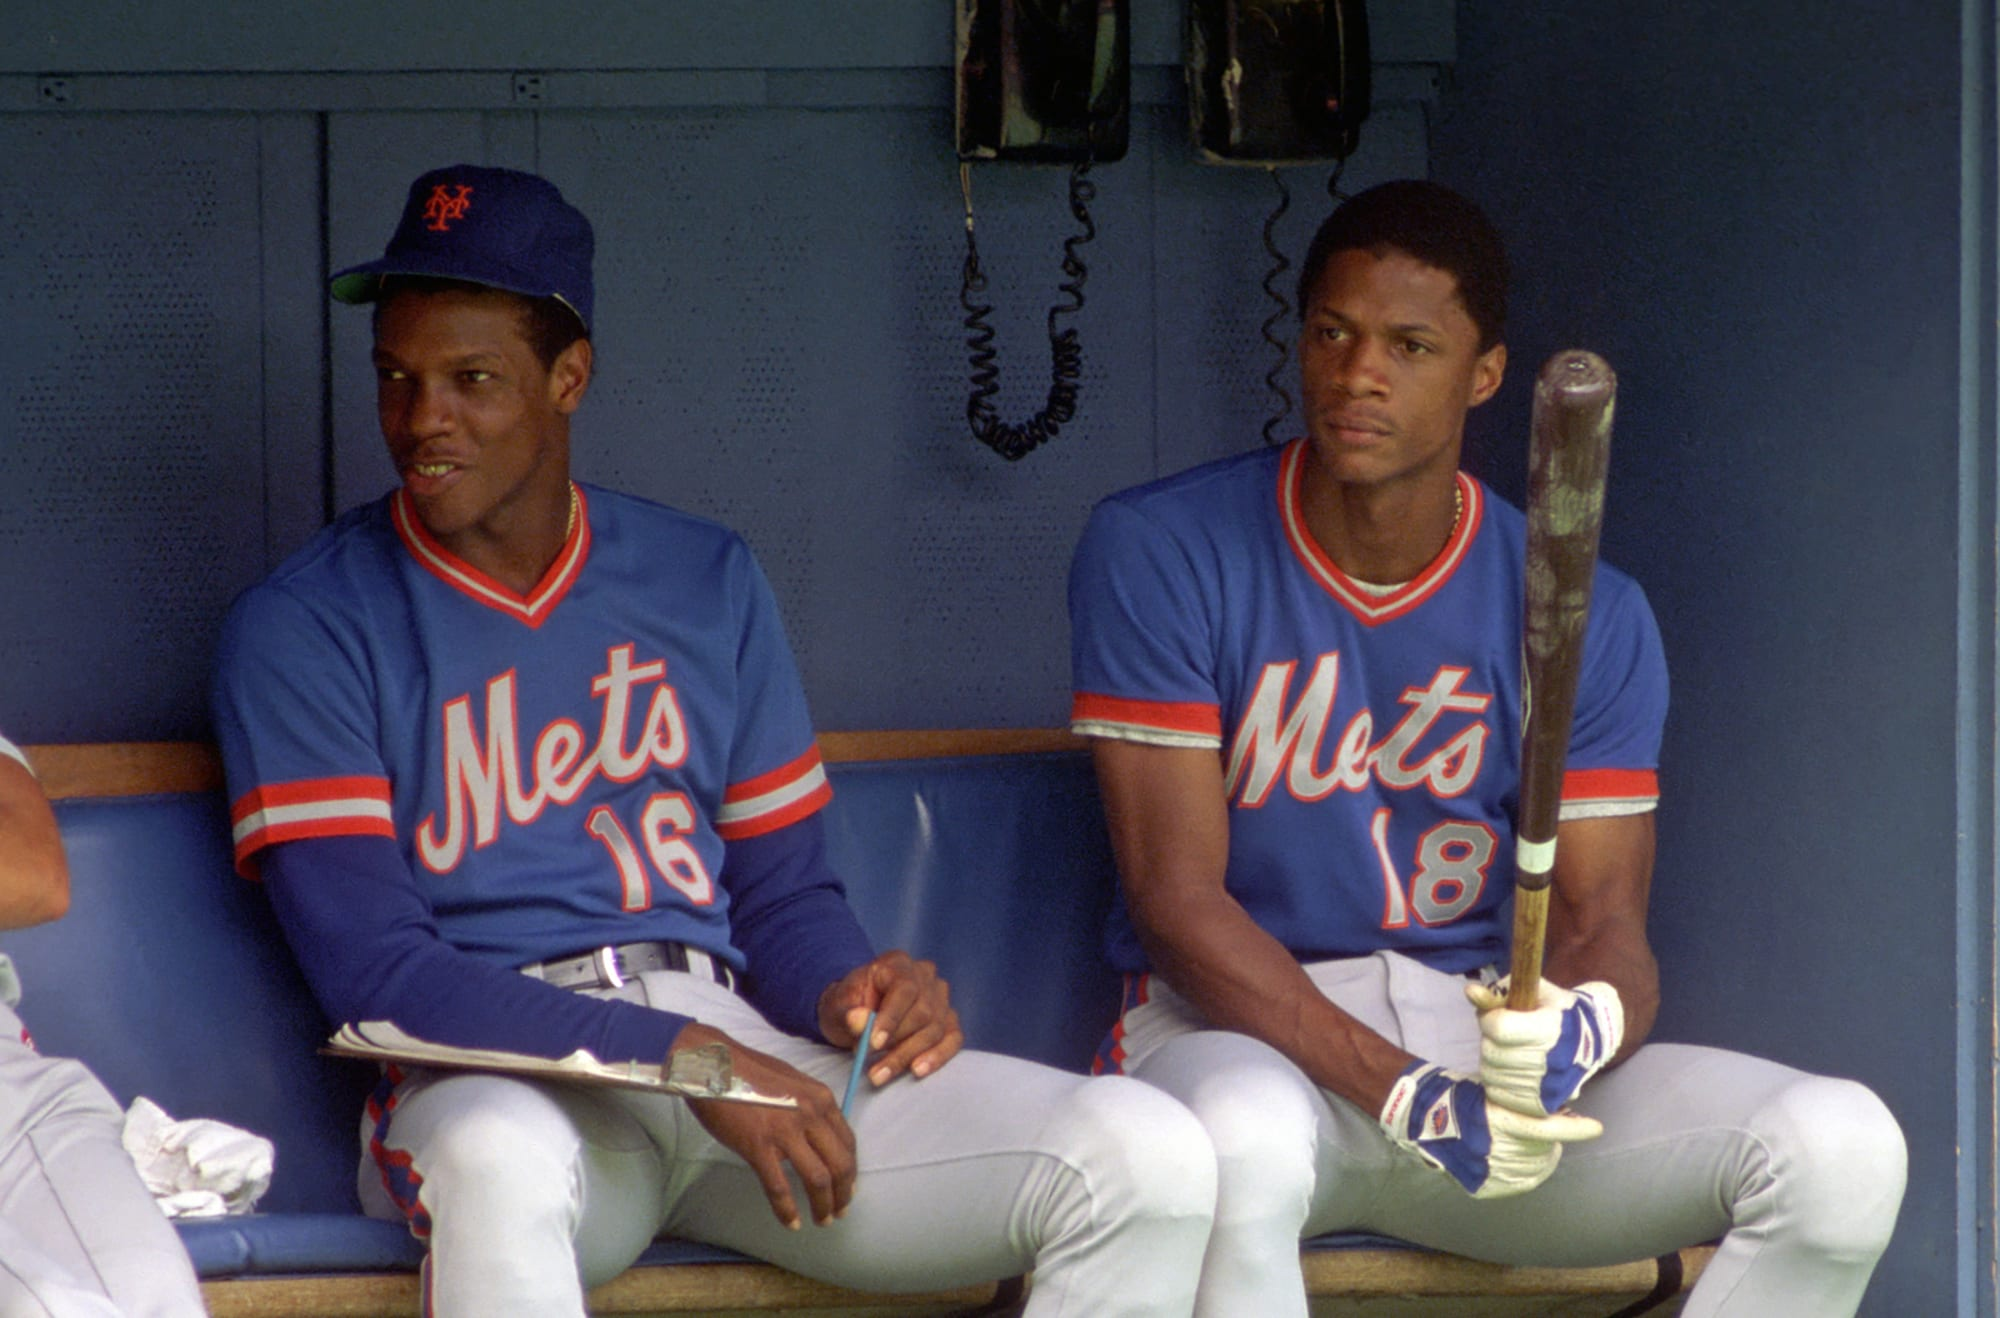 Mets Mount Rushmore: Are Darryl Strawberry and Dwight Gooden still there?